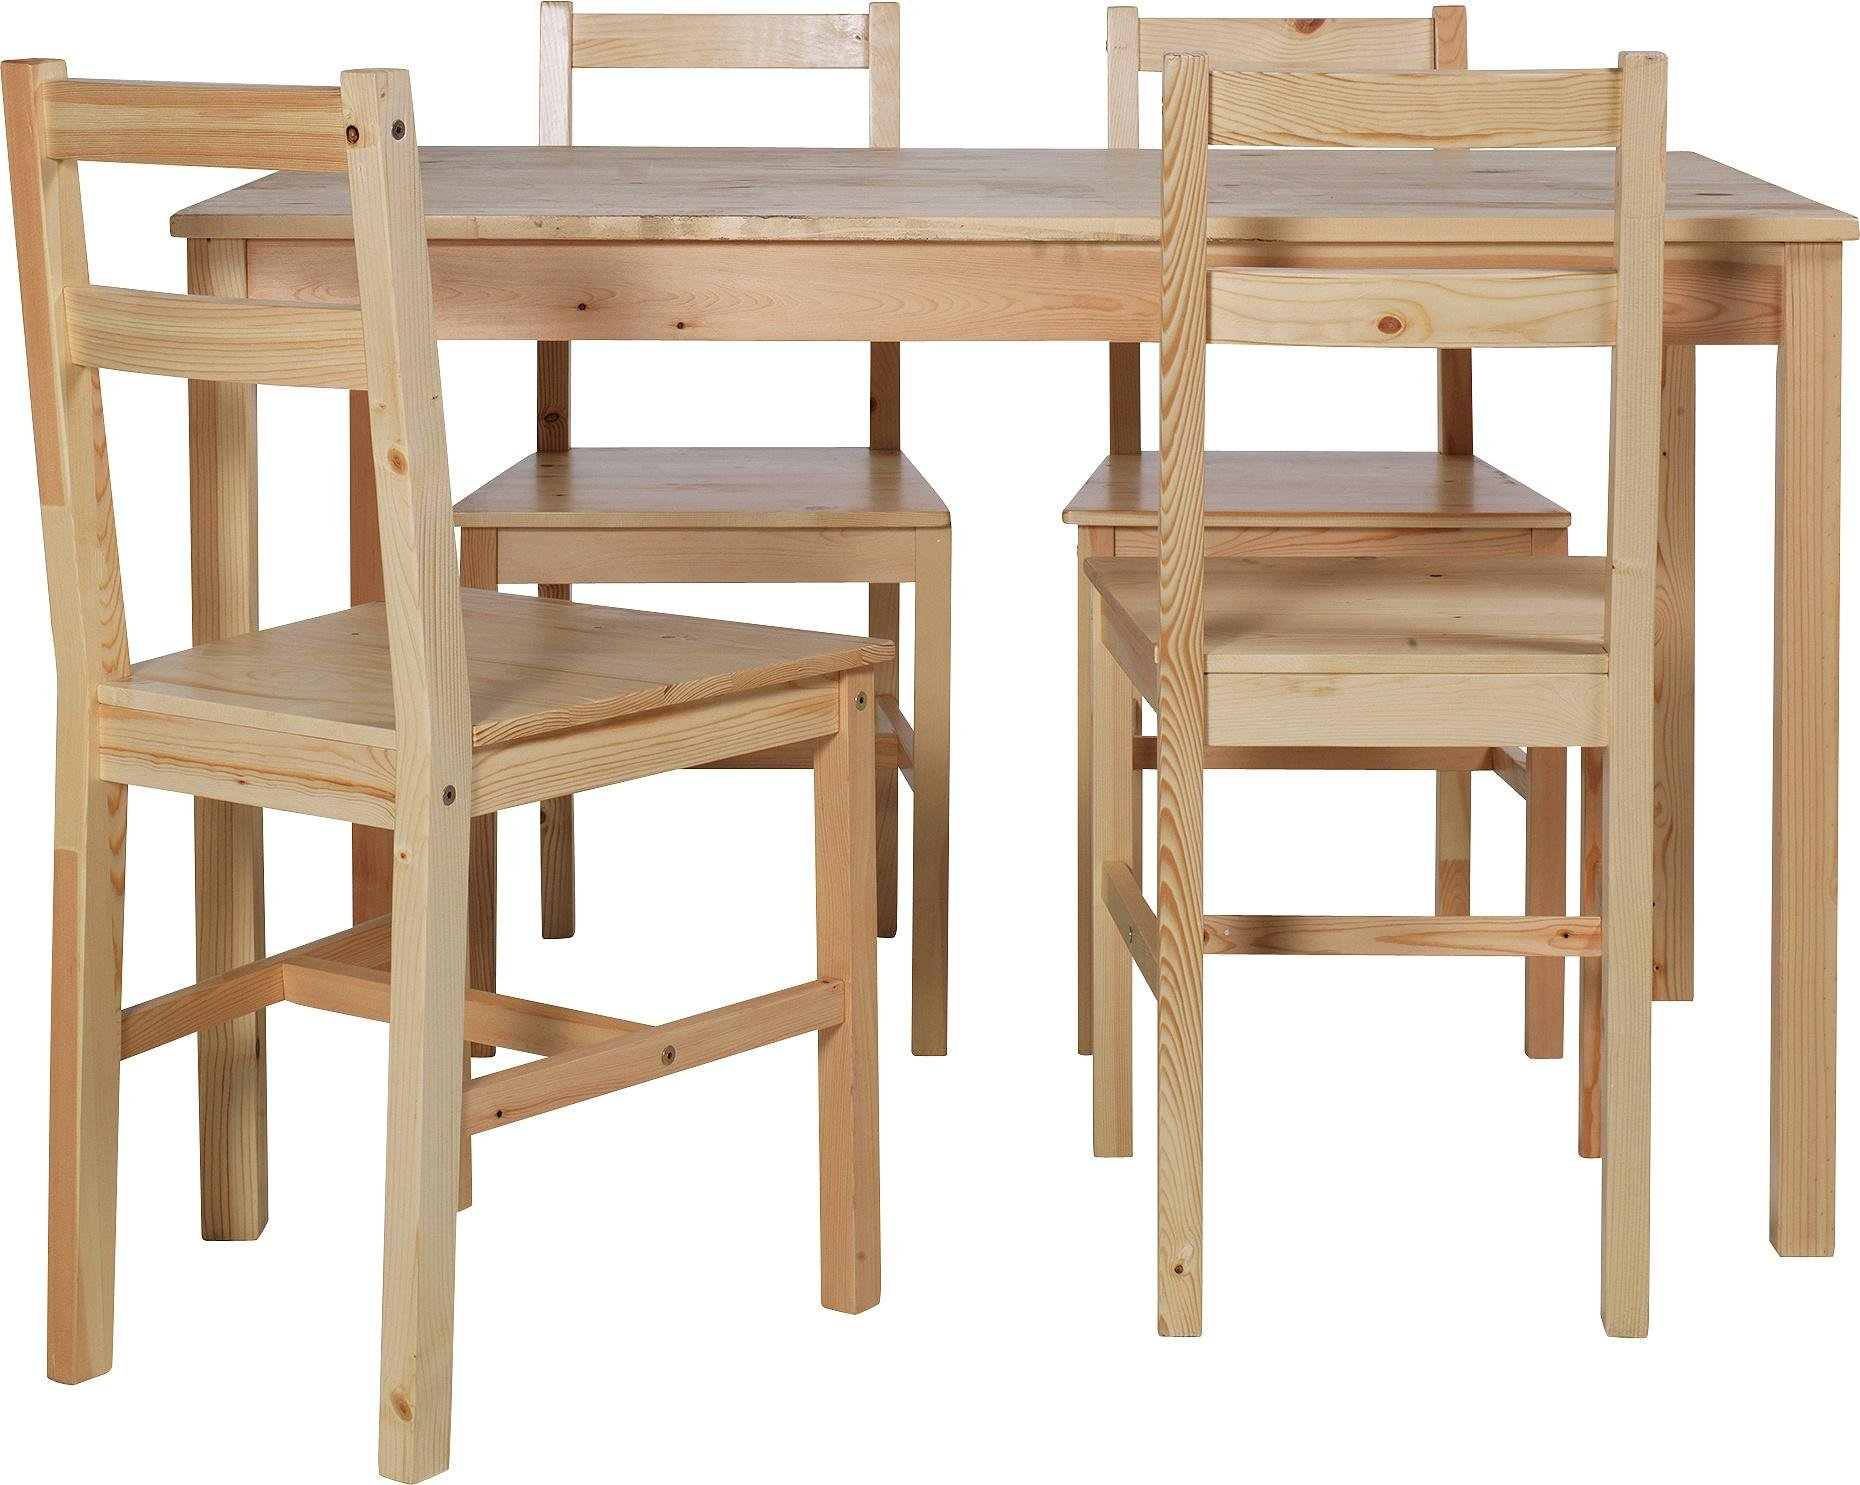 Home raye solid wood dining table and 4 chairs natural review - Natural oak dining table and chairs ...